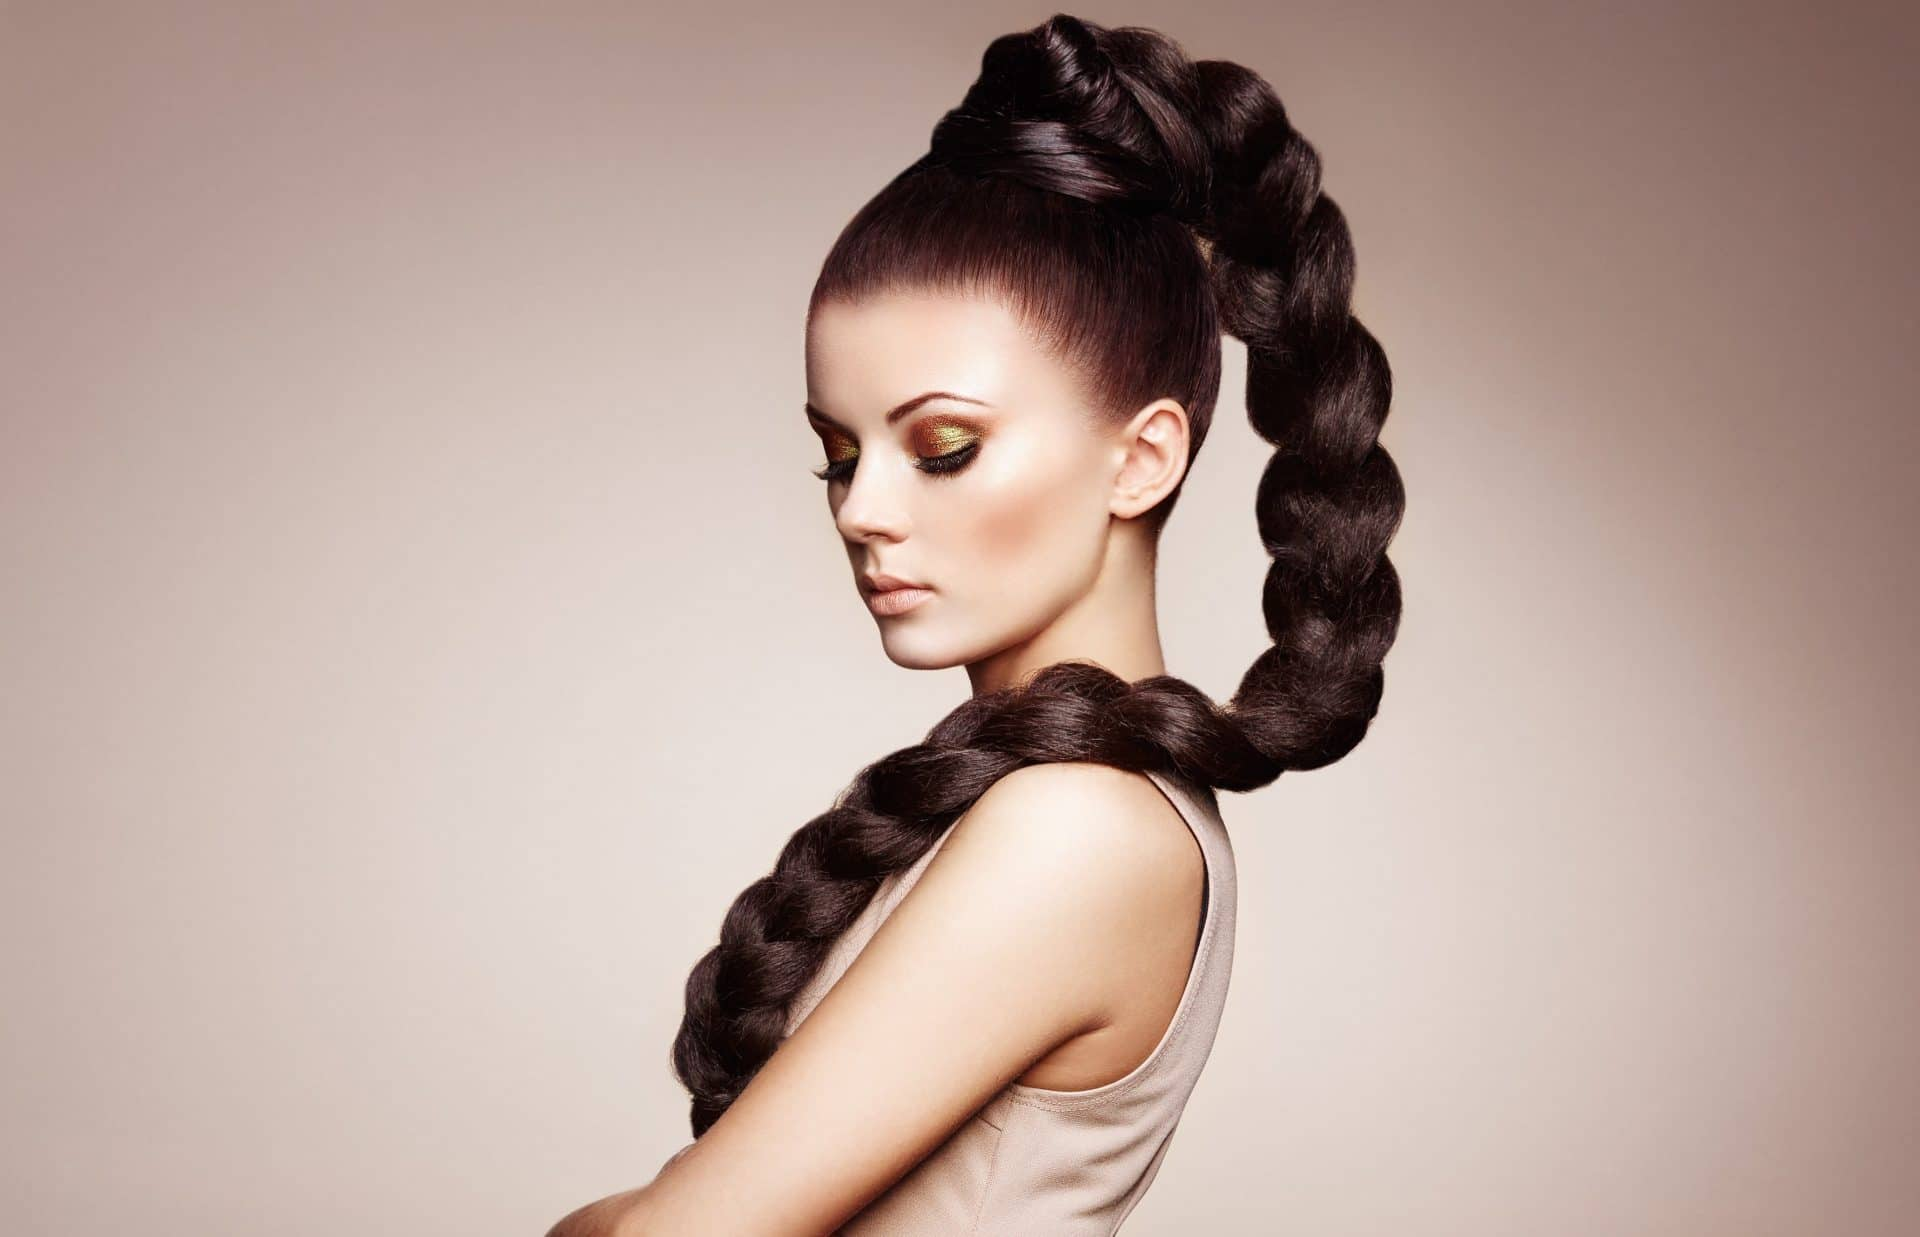 Salon Hair Hair Salon Naples Fl Salon Mulberry Haircut Color And Special